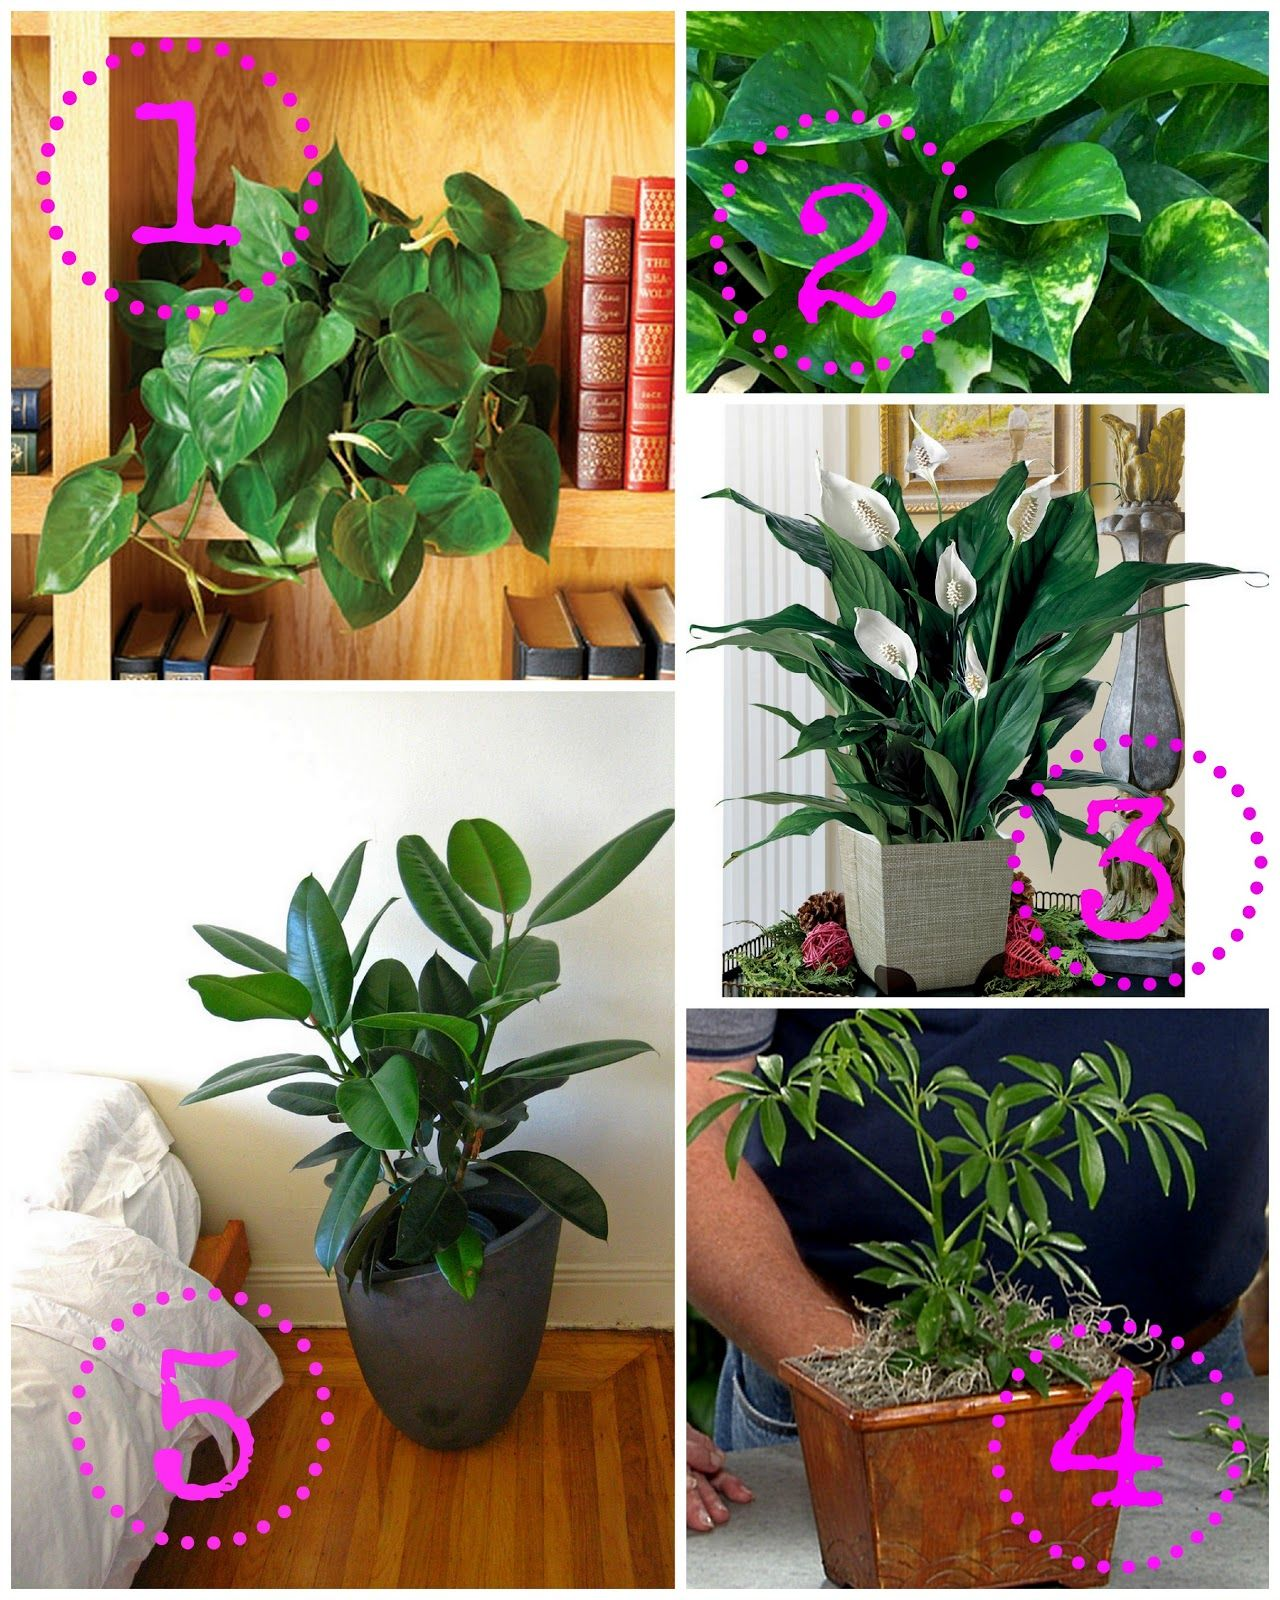 Keeping House Plants Alive Shine Your Light Plants Inside Plants House Plants